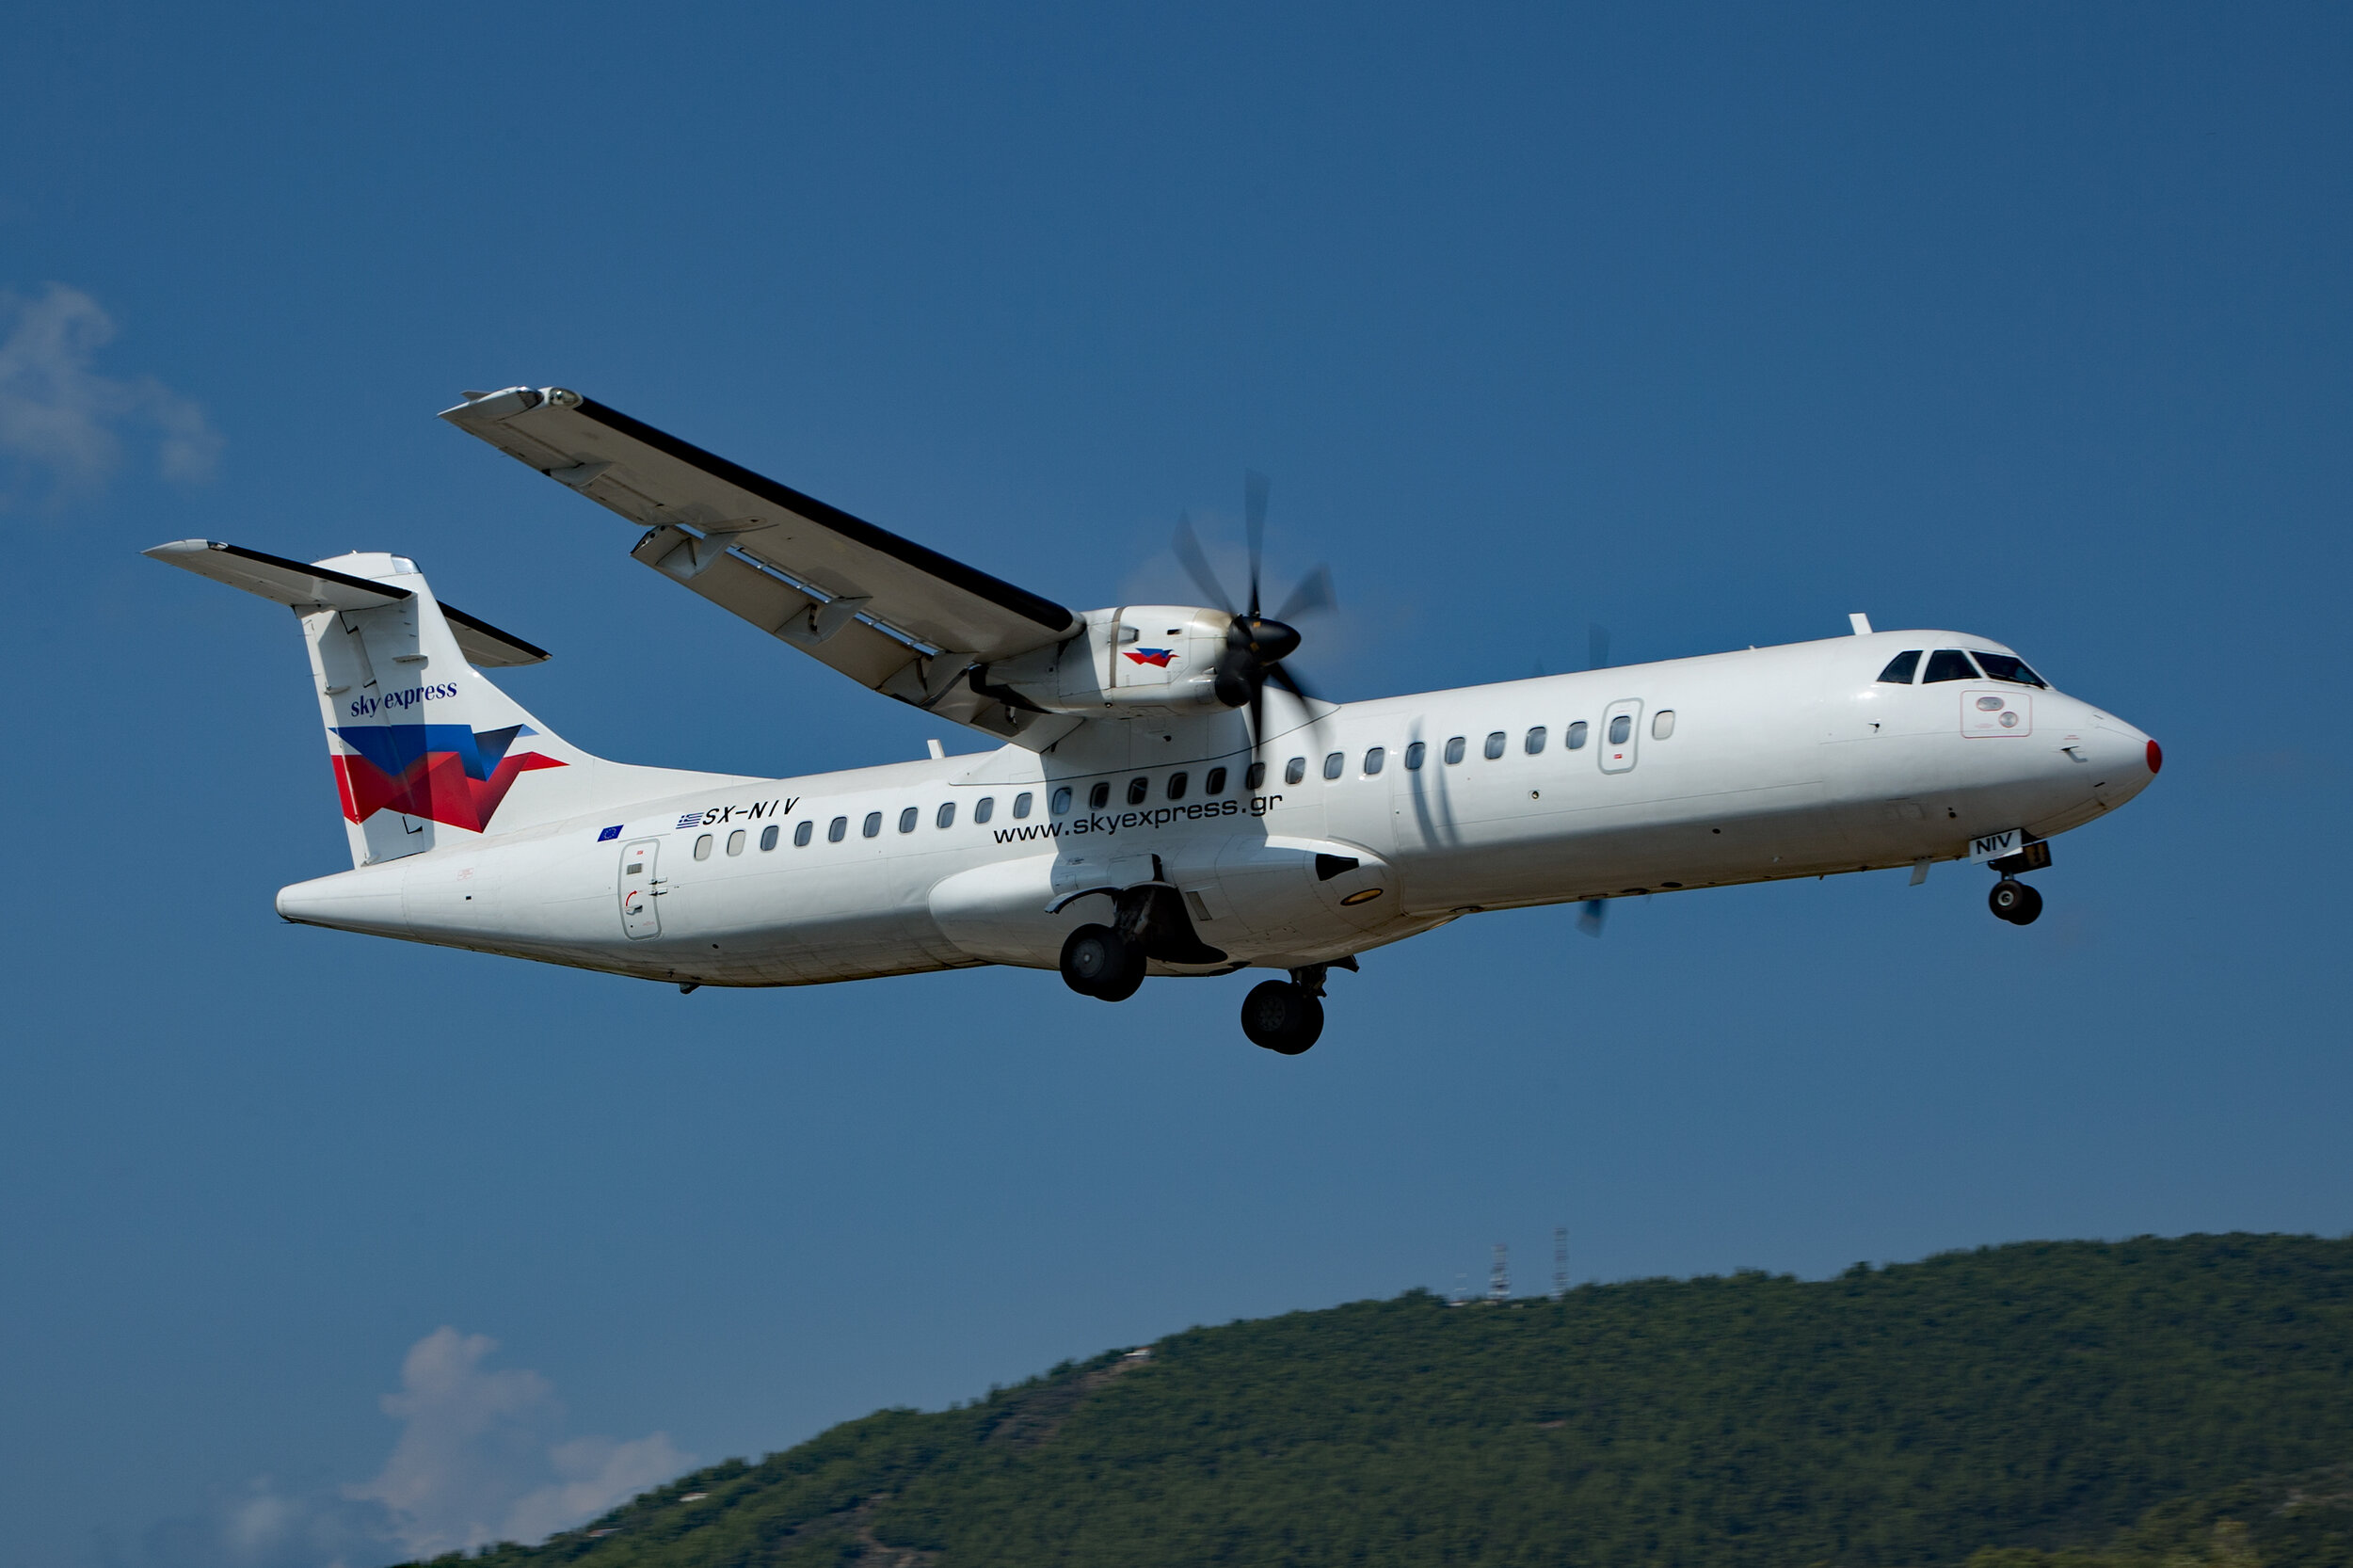 Sky Express operate a morning ATR 72 scheduled service from /to Athens. Peter H